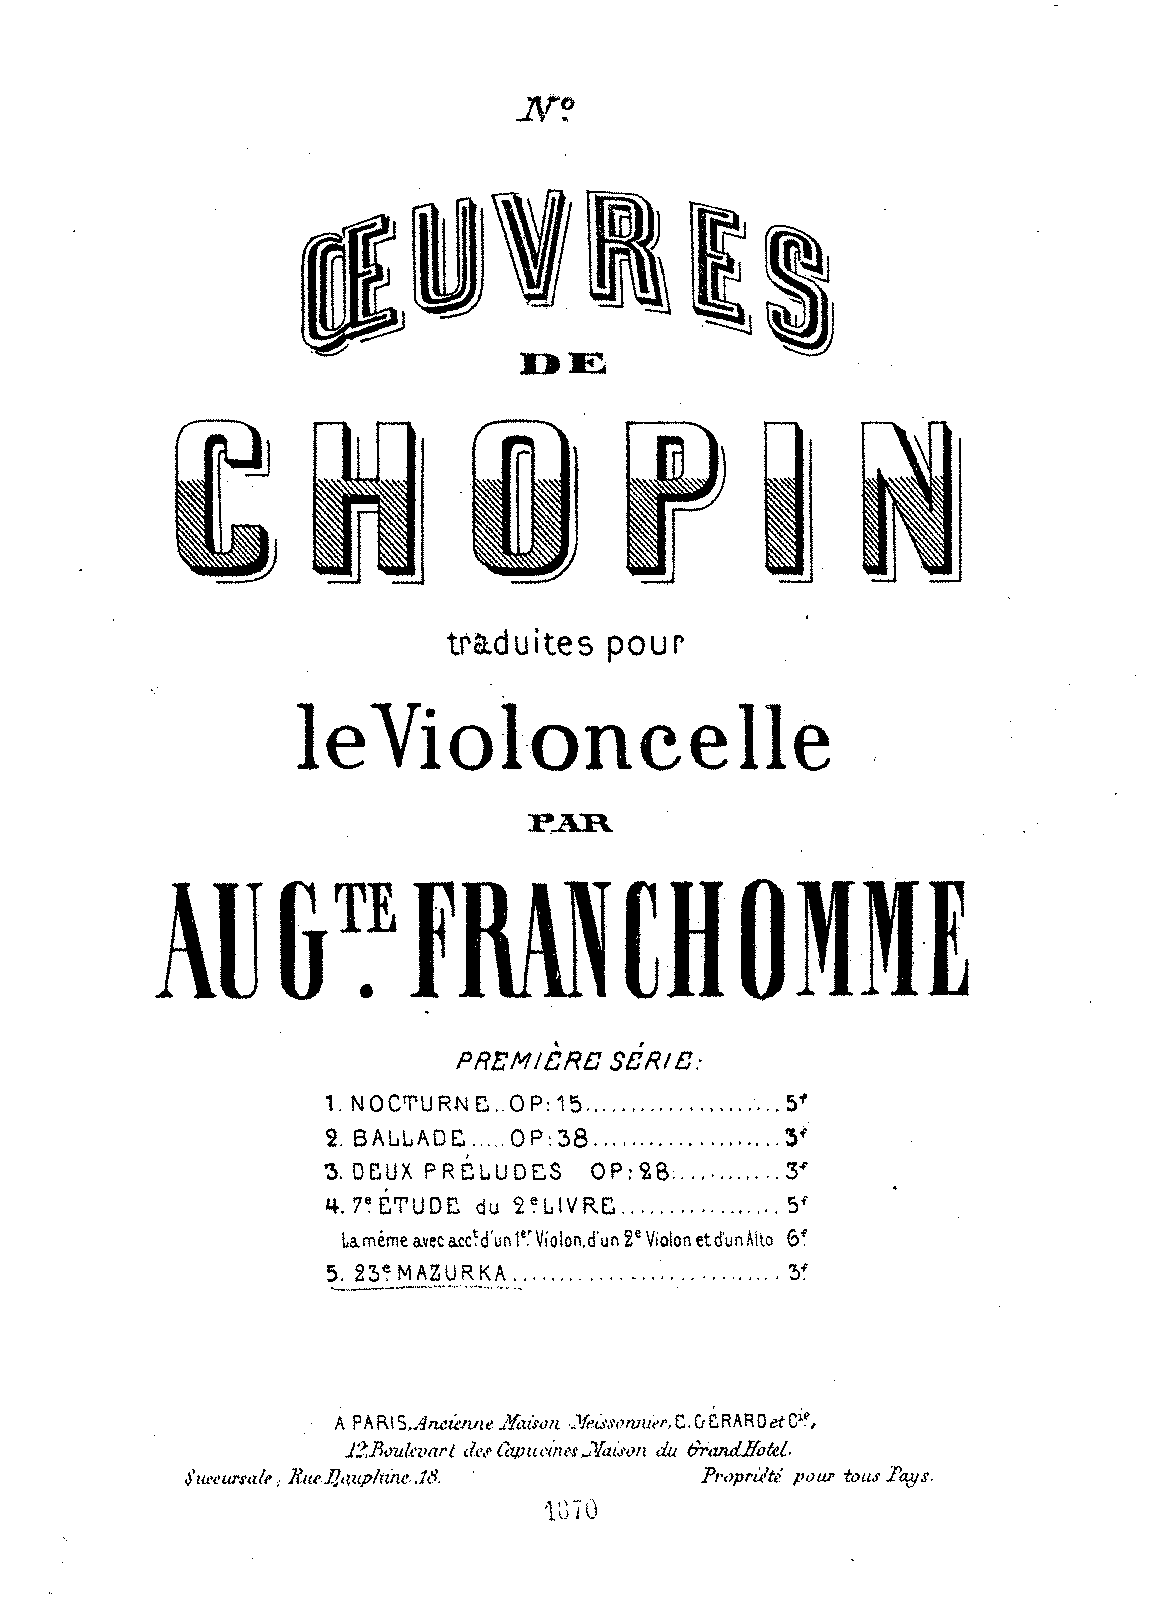 PMLP02284-Chopin - Mazurka No23 (Op33 No3) (Franchomme) for Cello and Piano.pdf